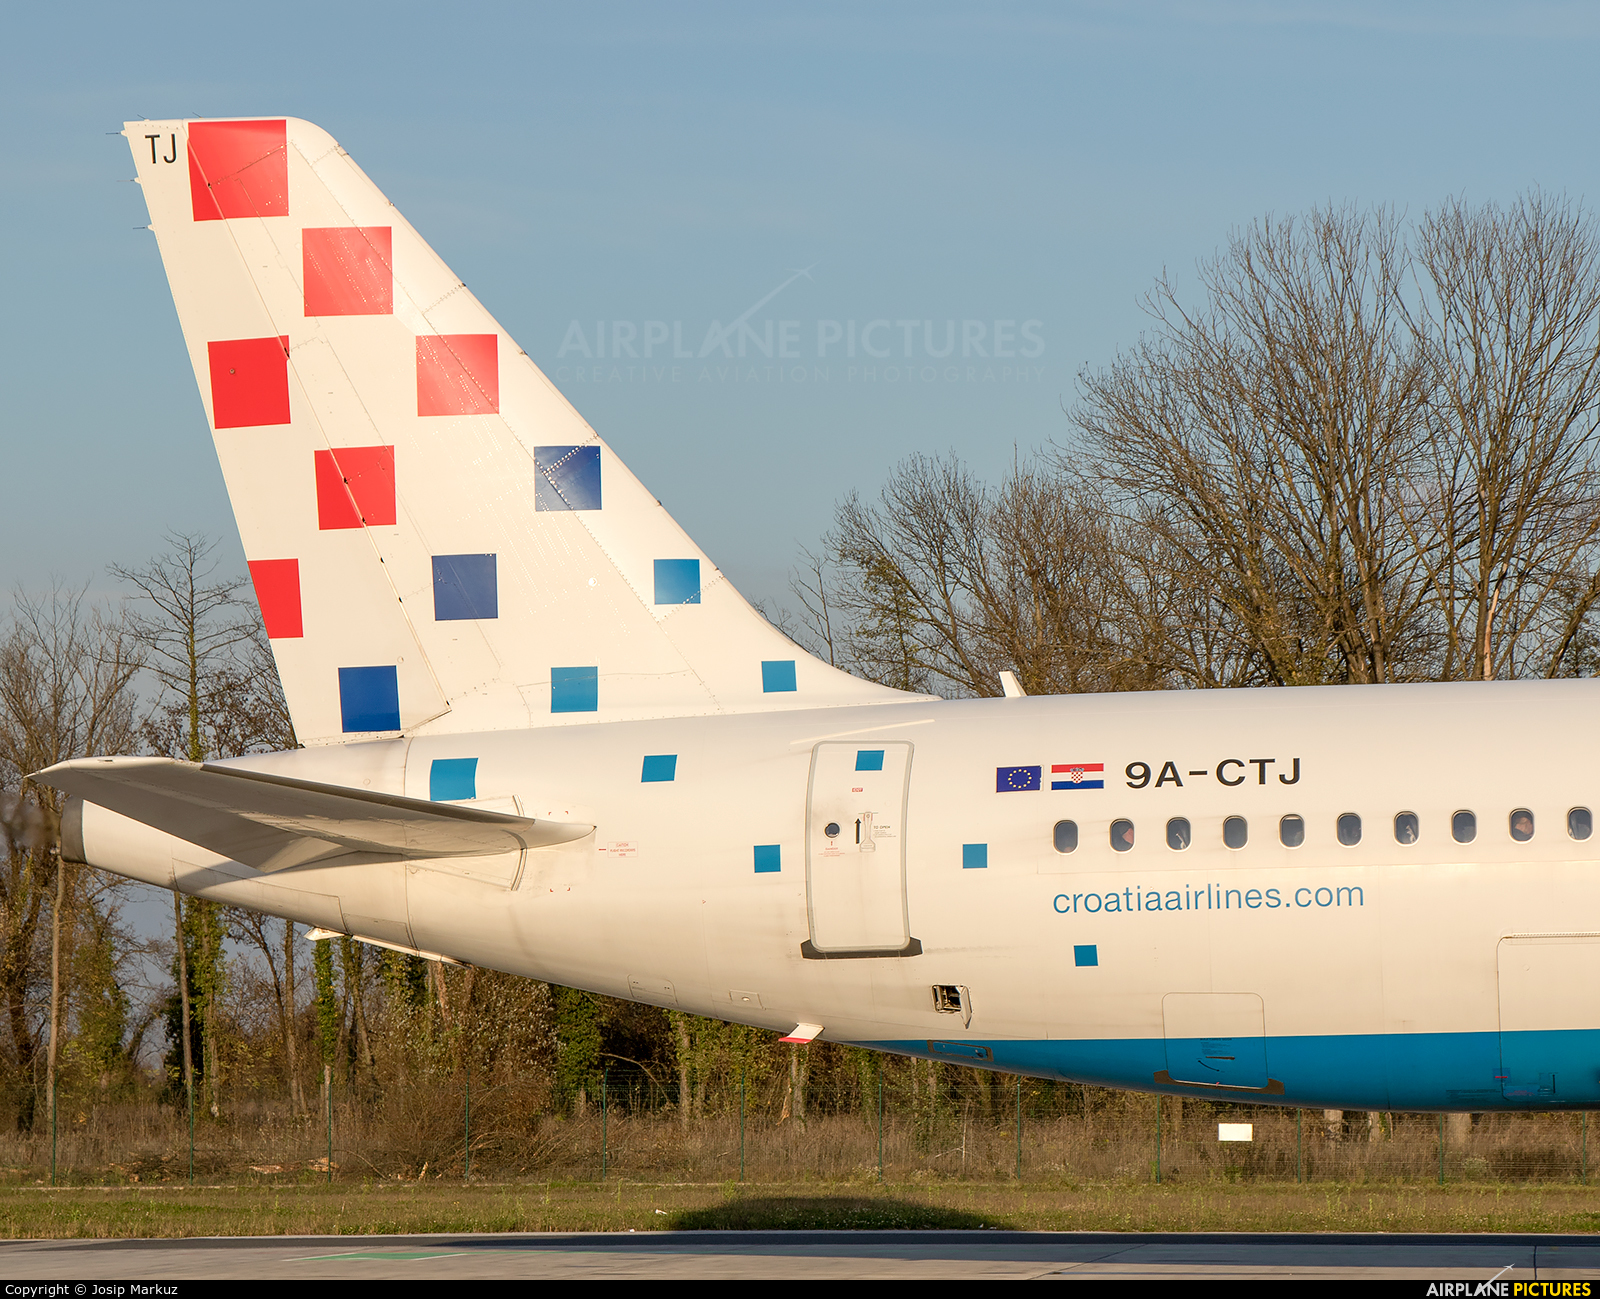 Croatia Airlines 9A-CTJ aircraft at Zagreb